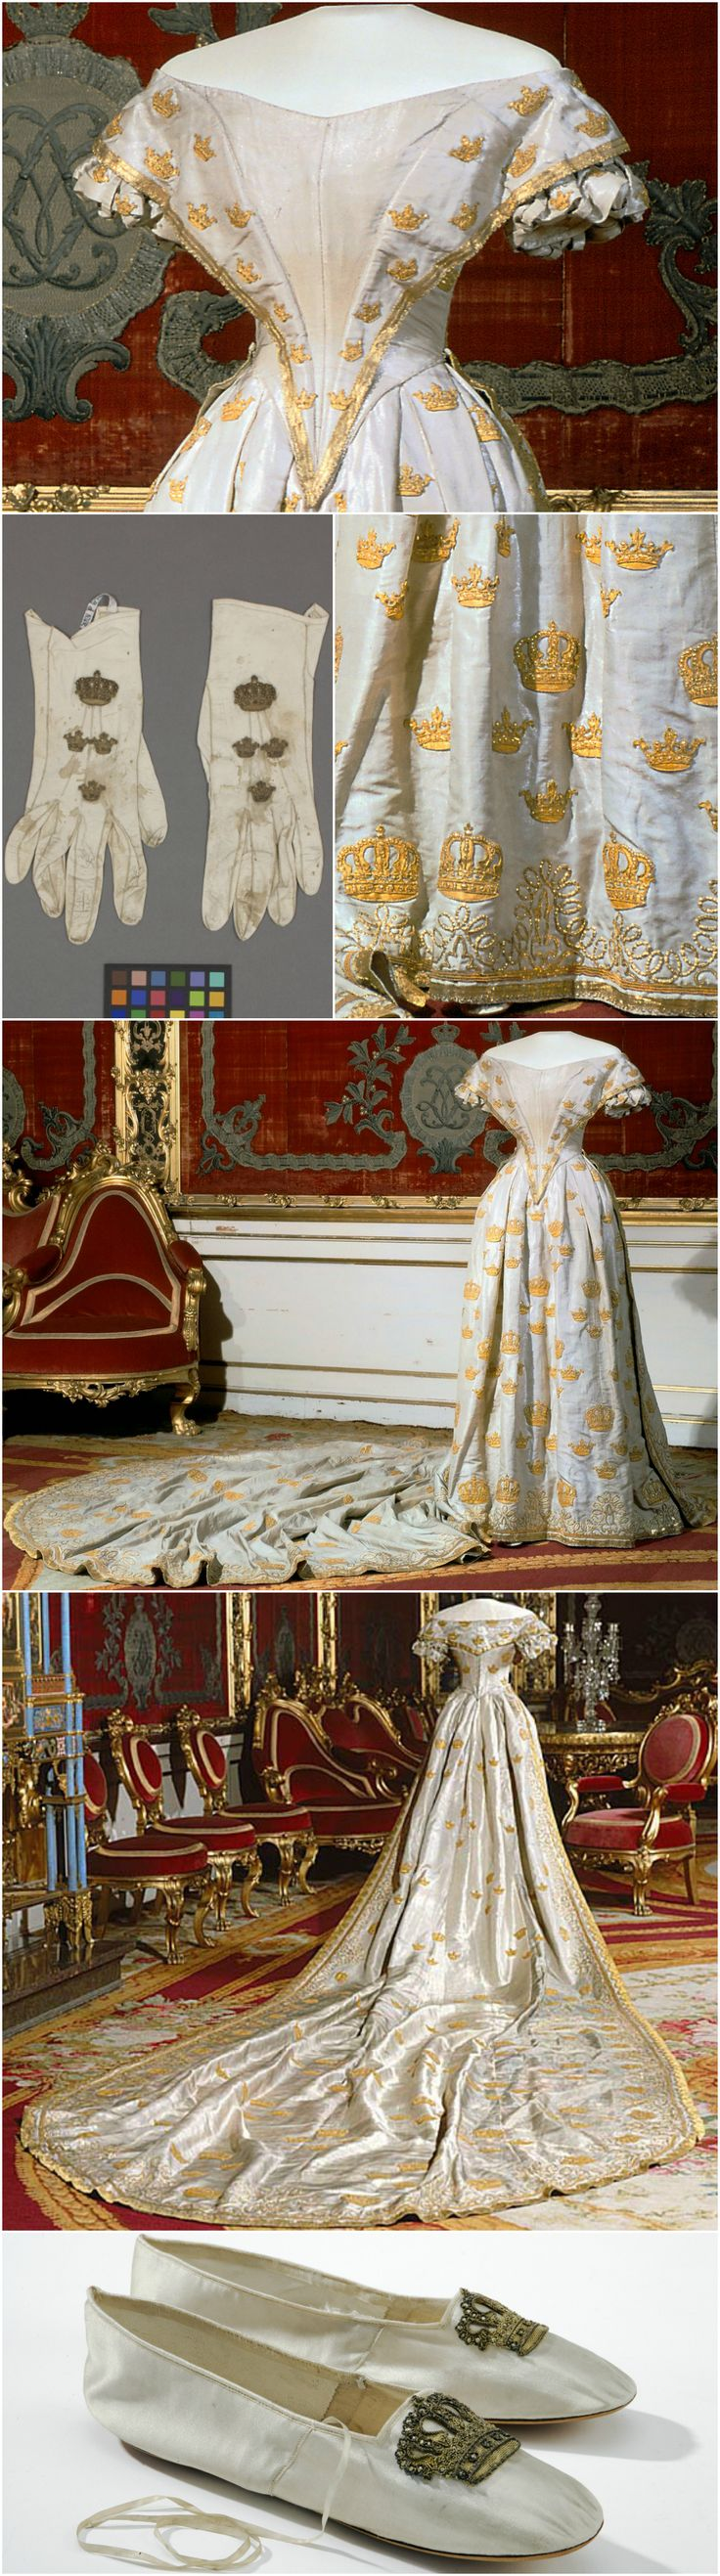 Coronation outfit (dress, gloves, shoes), 1860, at the Royal Armory, Stockholm. Worn by Queen Lovisa of Sweden (née Princess Louise of the Netherlands) for her coronation at Stockholm Cathedral on May 3, 1860. CLICK THROUGH FOR BIGGER IMAGES.